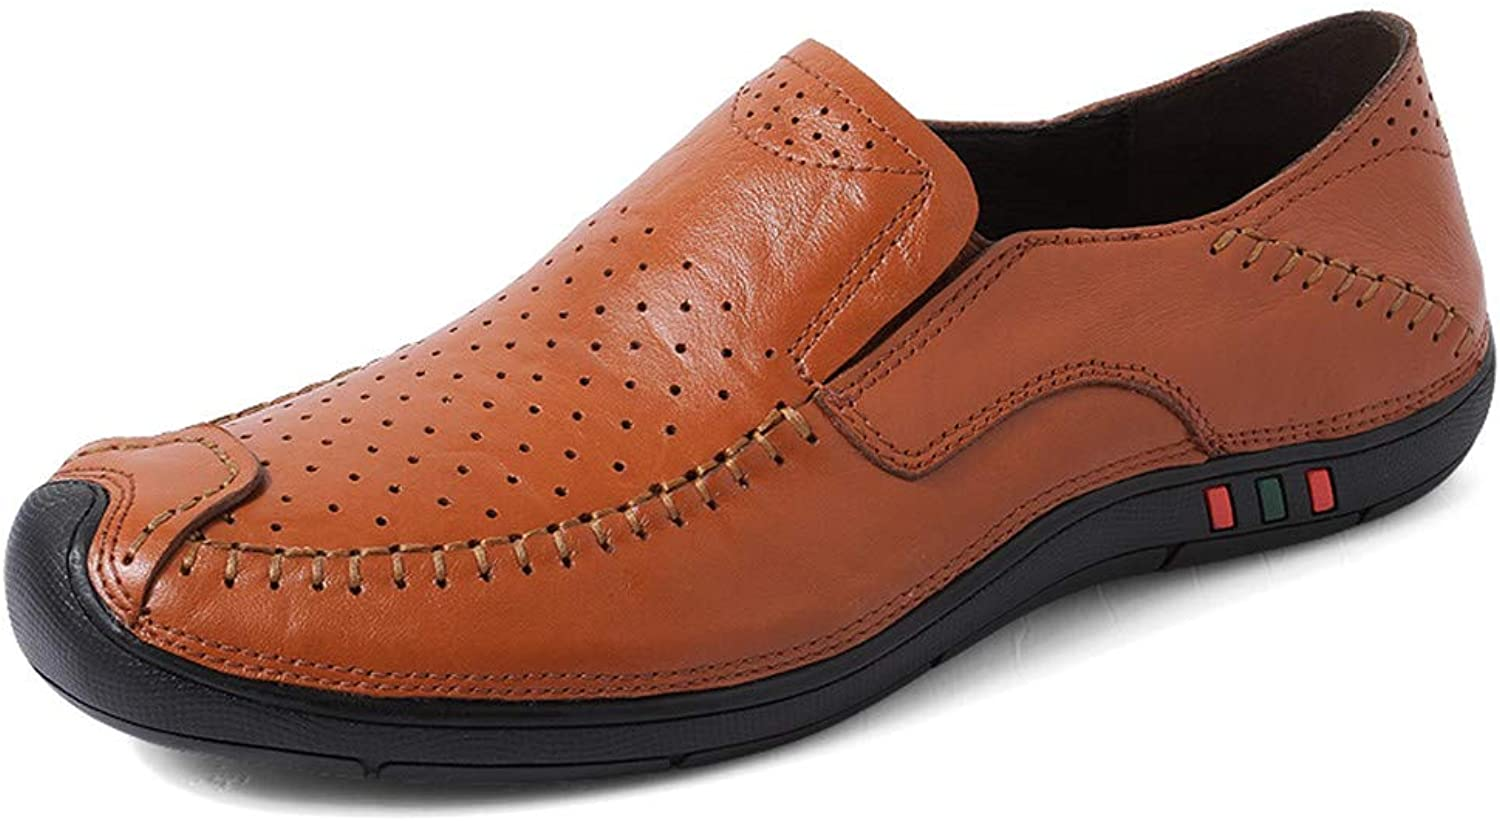 MUMUWU Men's Driving Loafers Casual Four Seasons Set Foot Size Comfortable Wear-Resistant Boat Moccasins Semi (color   Hollow Brown, Size   10 D(M) US)